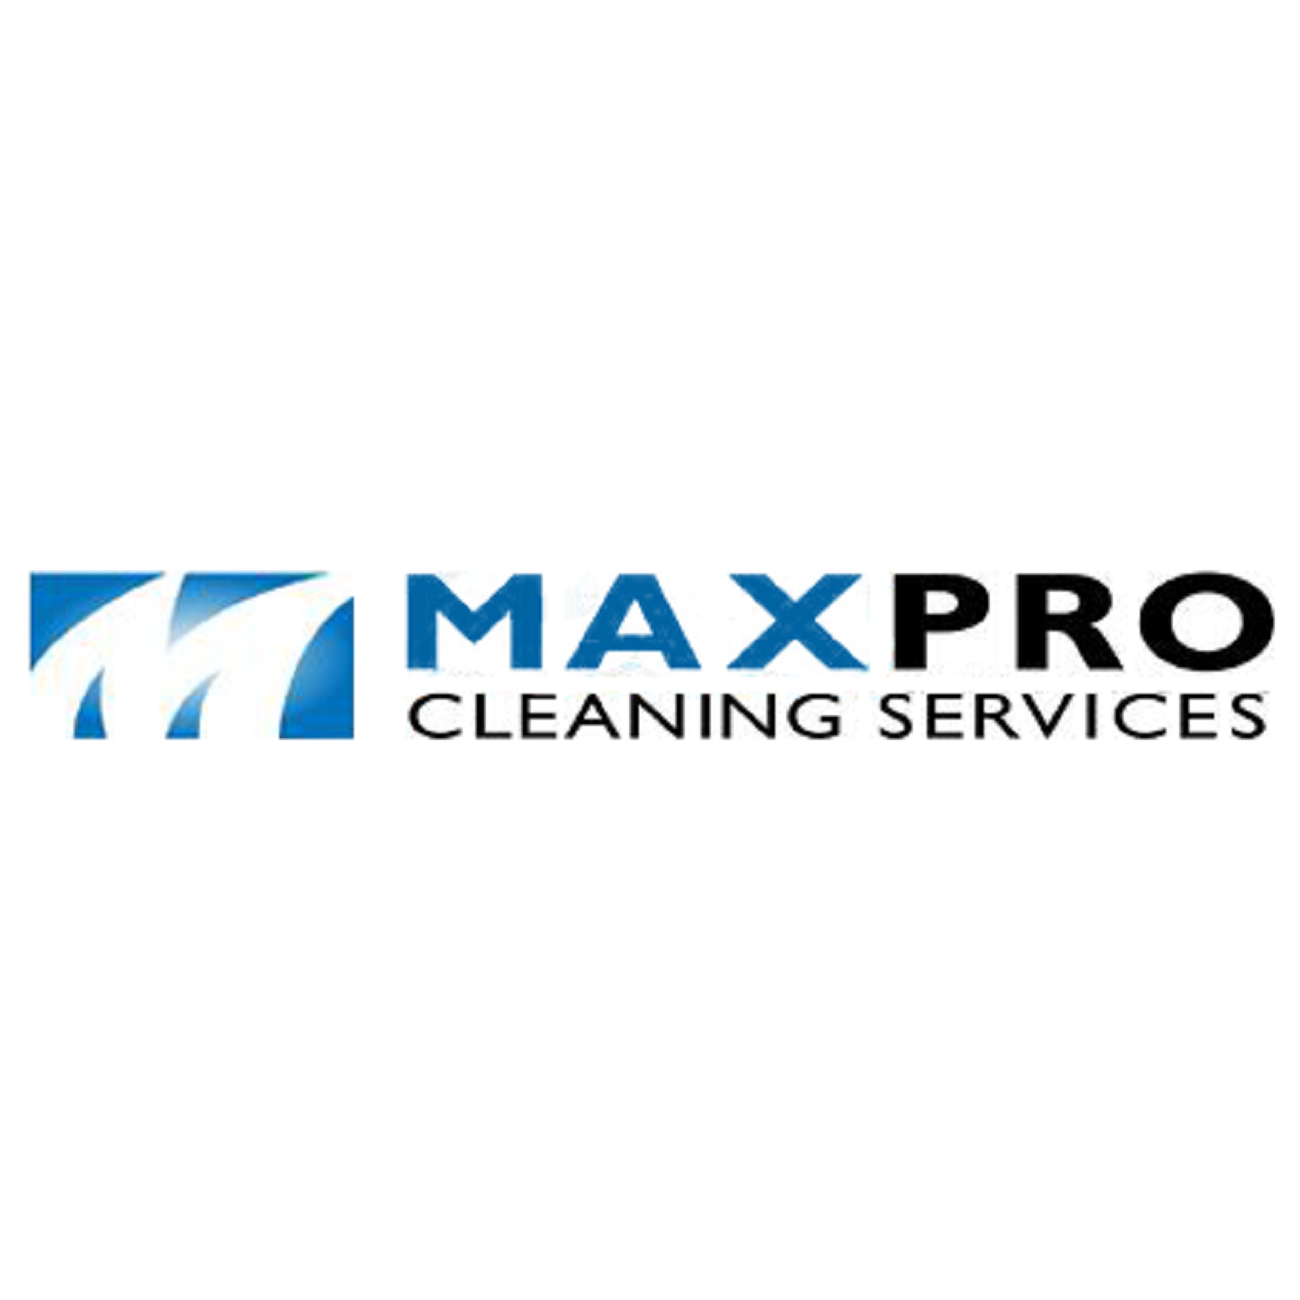 MAXPRO Cleaning Services